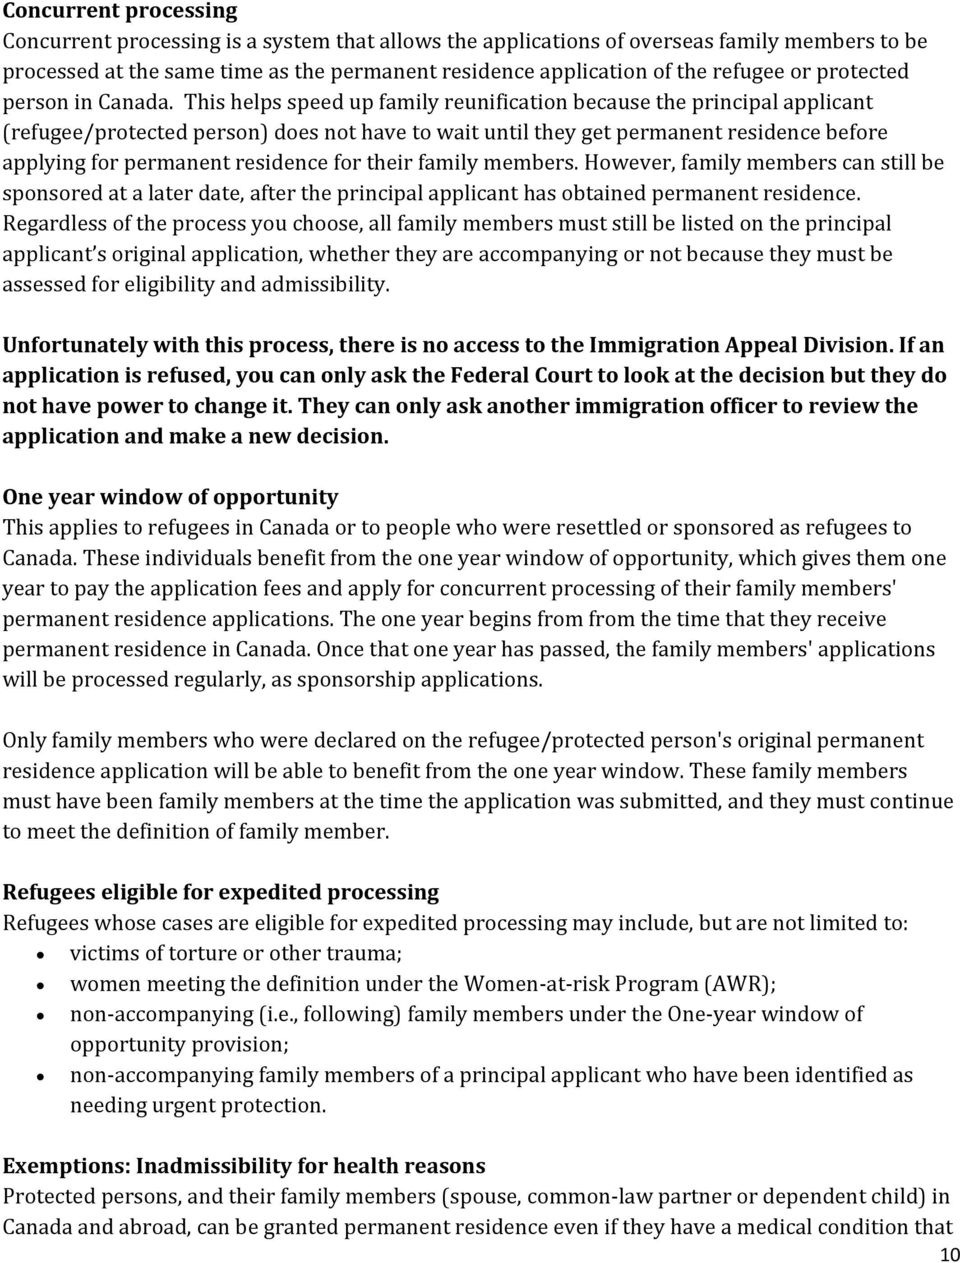 This helps speed up family reunification because the principal applicant (refugee/protected person) does not have to wait until they get permanent residence before applying for permanent residence